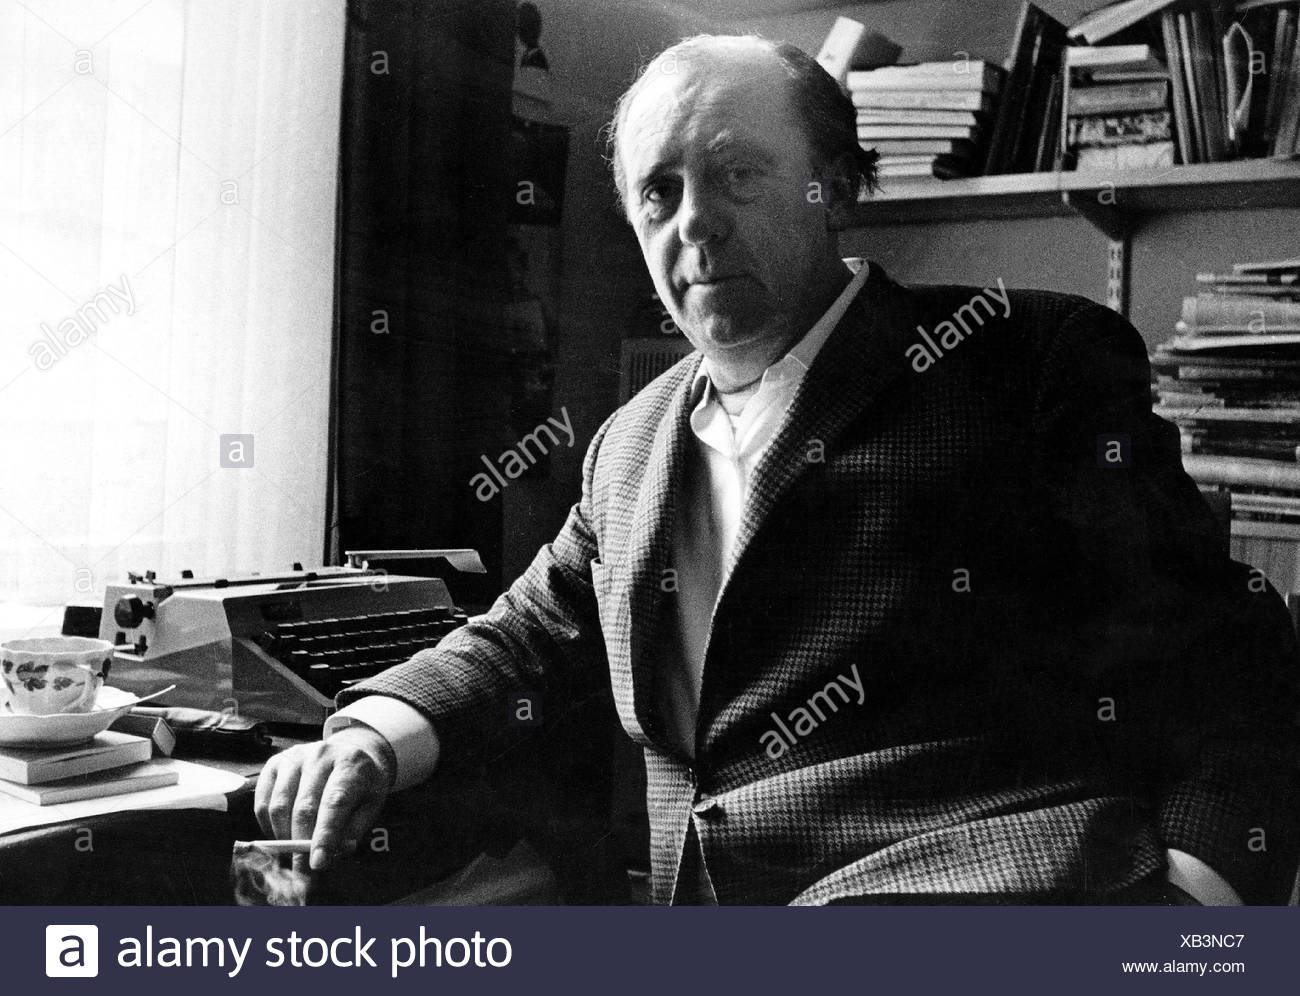 Böll, Heinrich  21.12.1917 - 16.7.1985, German author / writer, half length, at his desk,  Cologne, Germany, 1971, Additional-Rights-Clearances-NA - Stock Image